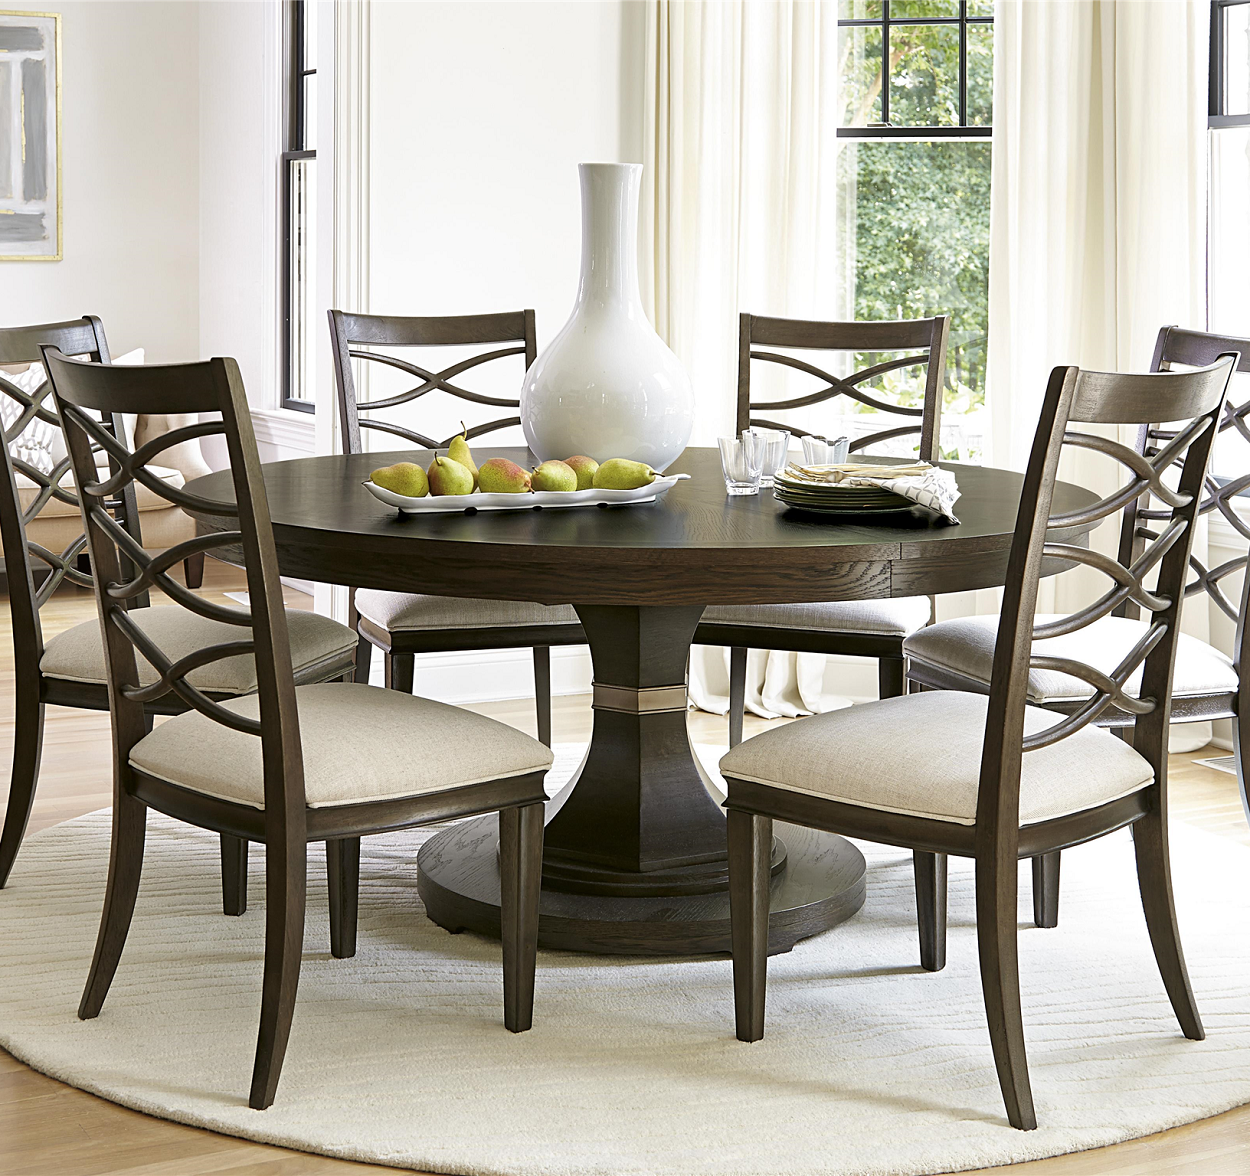 California Rustic Oak Expandable Round Dining Table  Round Dining Custom Round Dining Room Tables For Sale Design Ideas